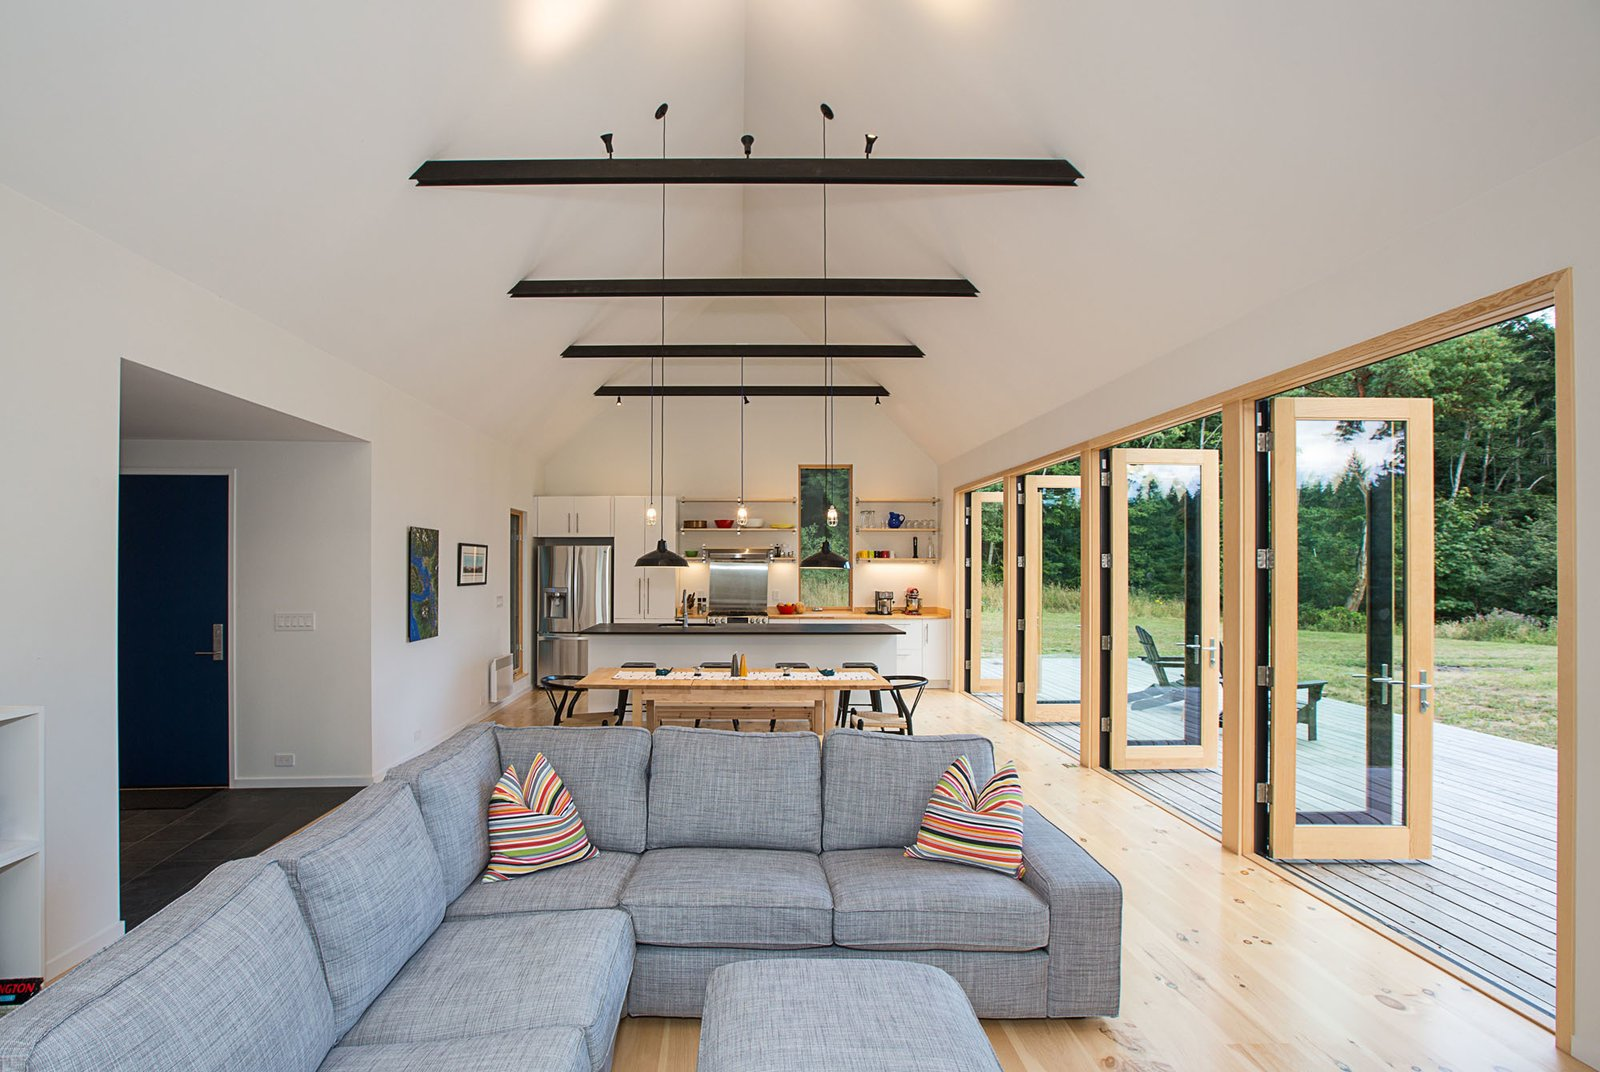 Living Room, Sofa, Pendant Lighting, Track Lighting, and Light Hardwood Floor A combination of carefully chosen furniture and finishes, including pine flooring and trim, warms up the lofty white interior.  The Coyle by Prentiss + Balance + Wickline Architects